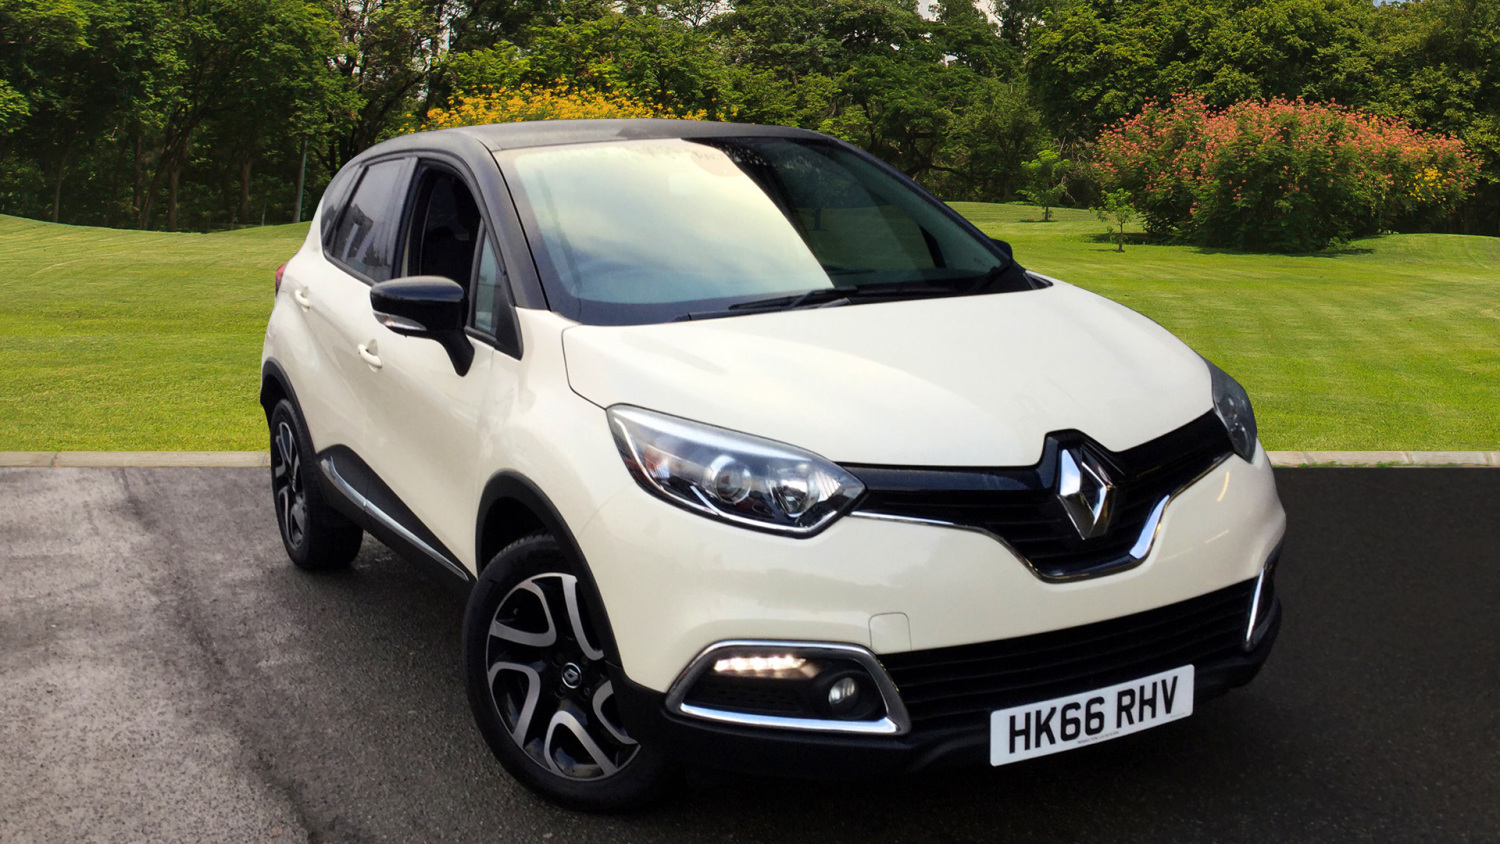 used renault captur 1 5 dci 90 dynamique s nav 5dr diesel hatchback for sale vertu volkswagen. Black Bedroom Furniture Sets. Home Design Ideas